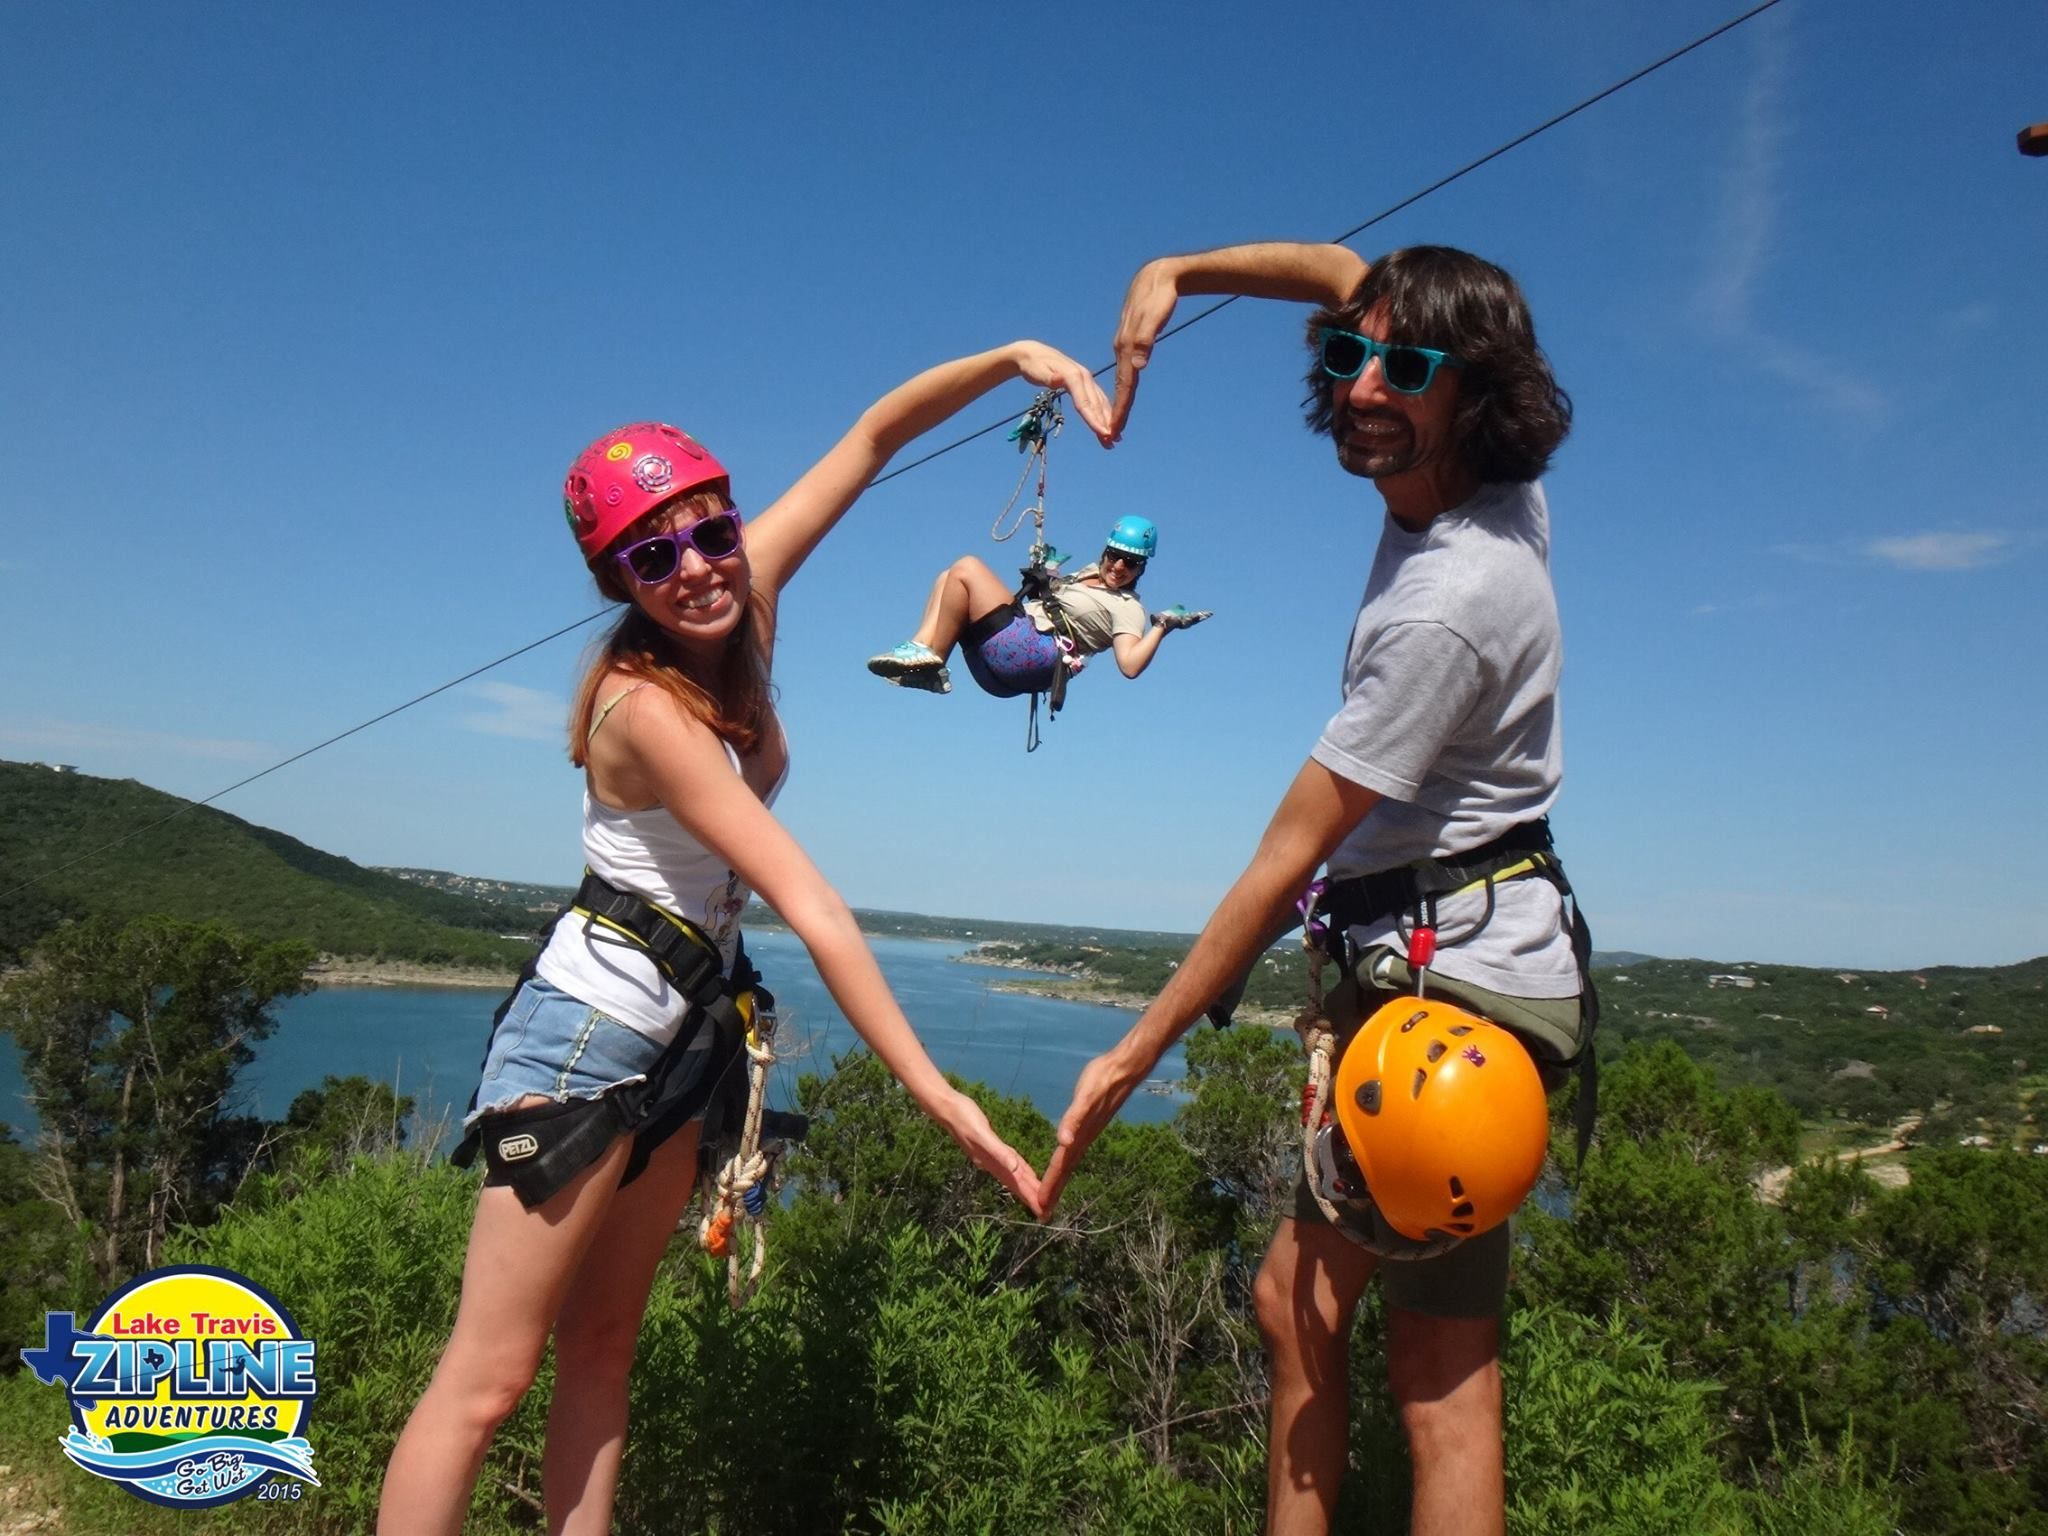 Do You Love Adventure Austin Come Zipline With Us Over